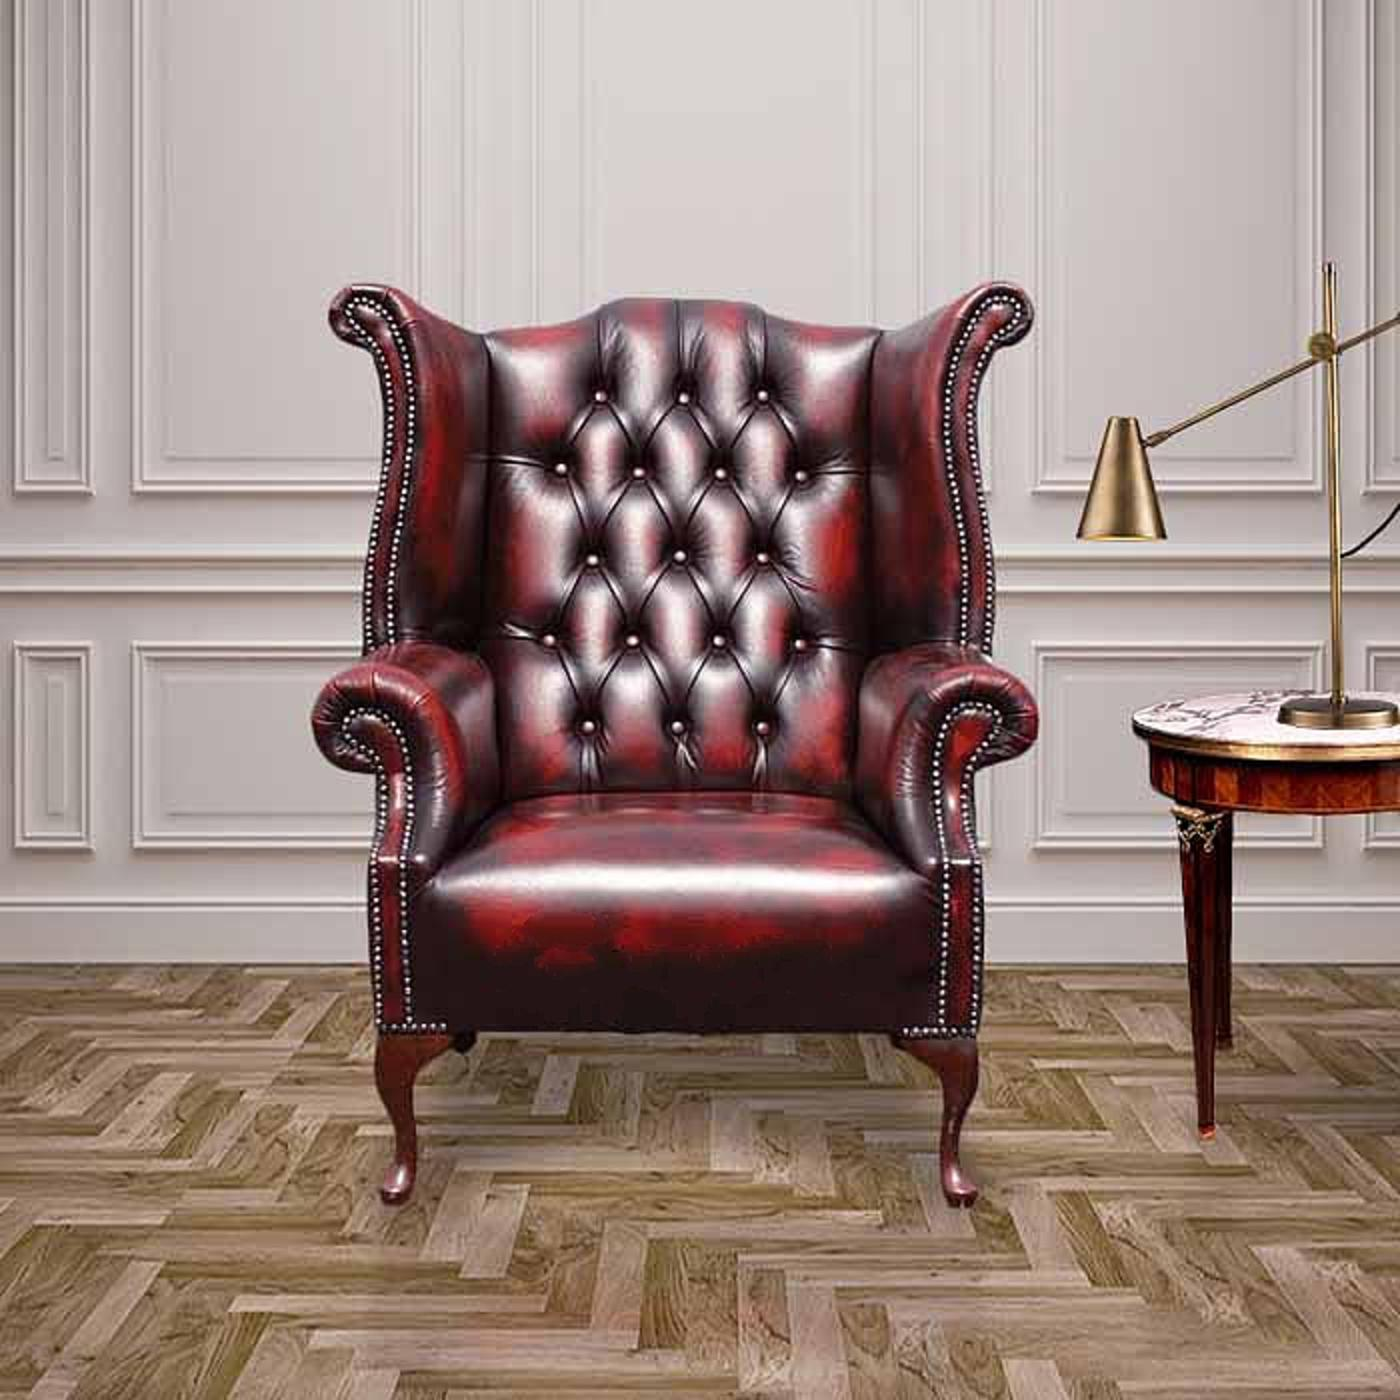 1780u0027s queen anne high back wing chair uk antique oxblood